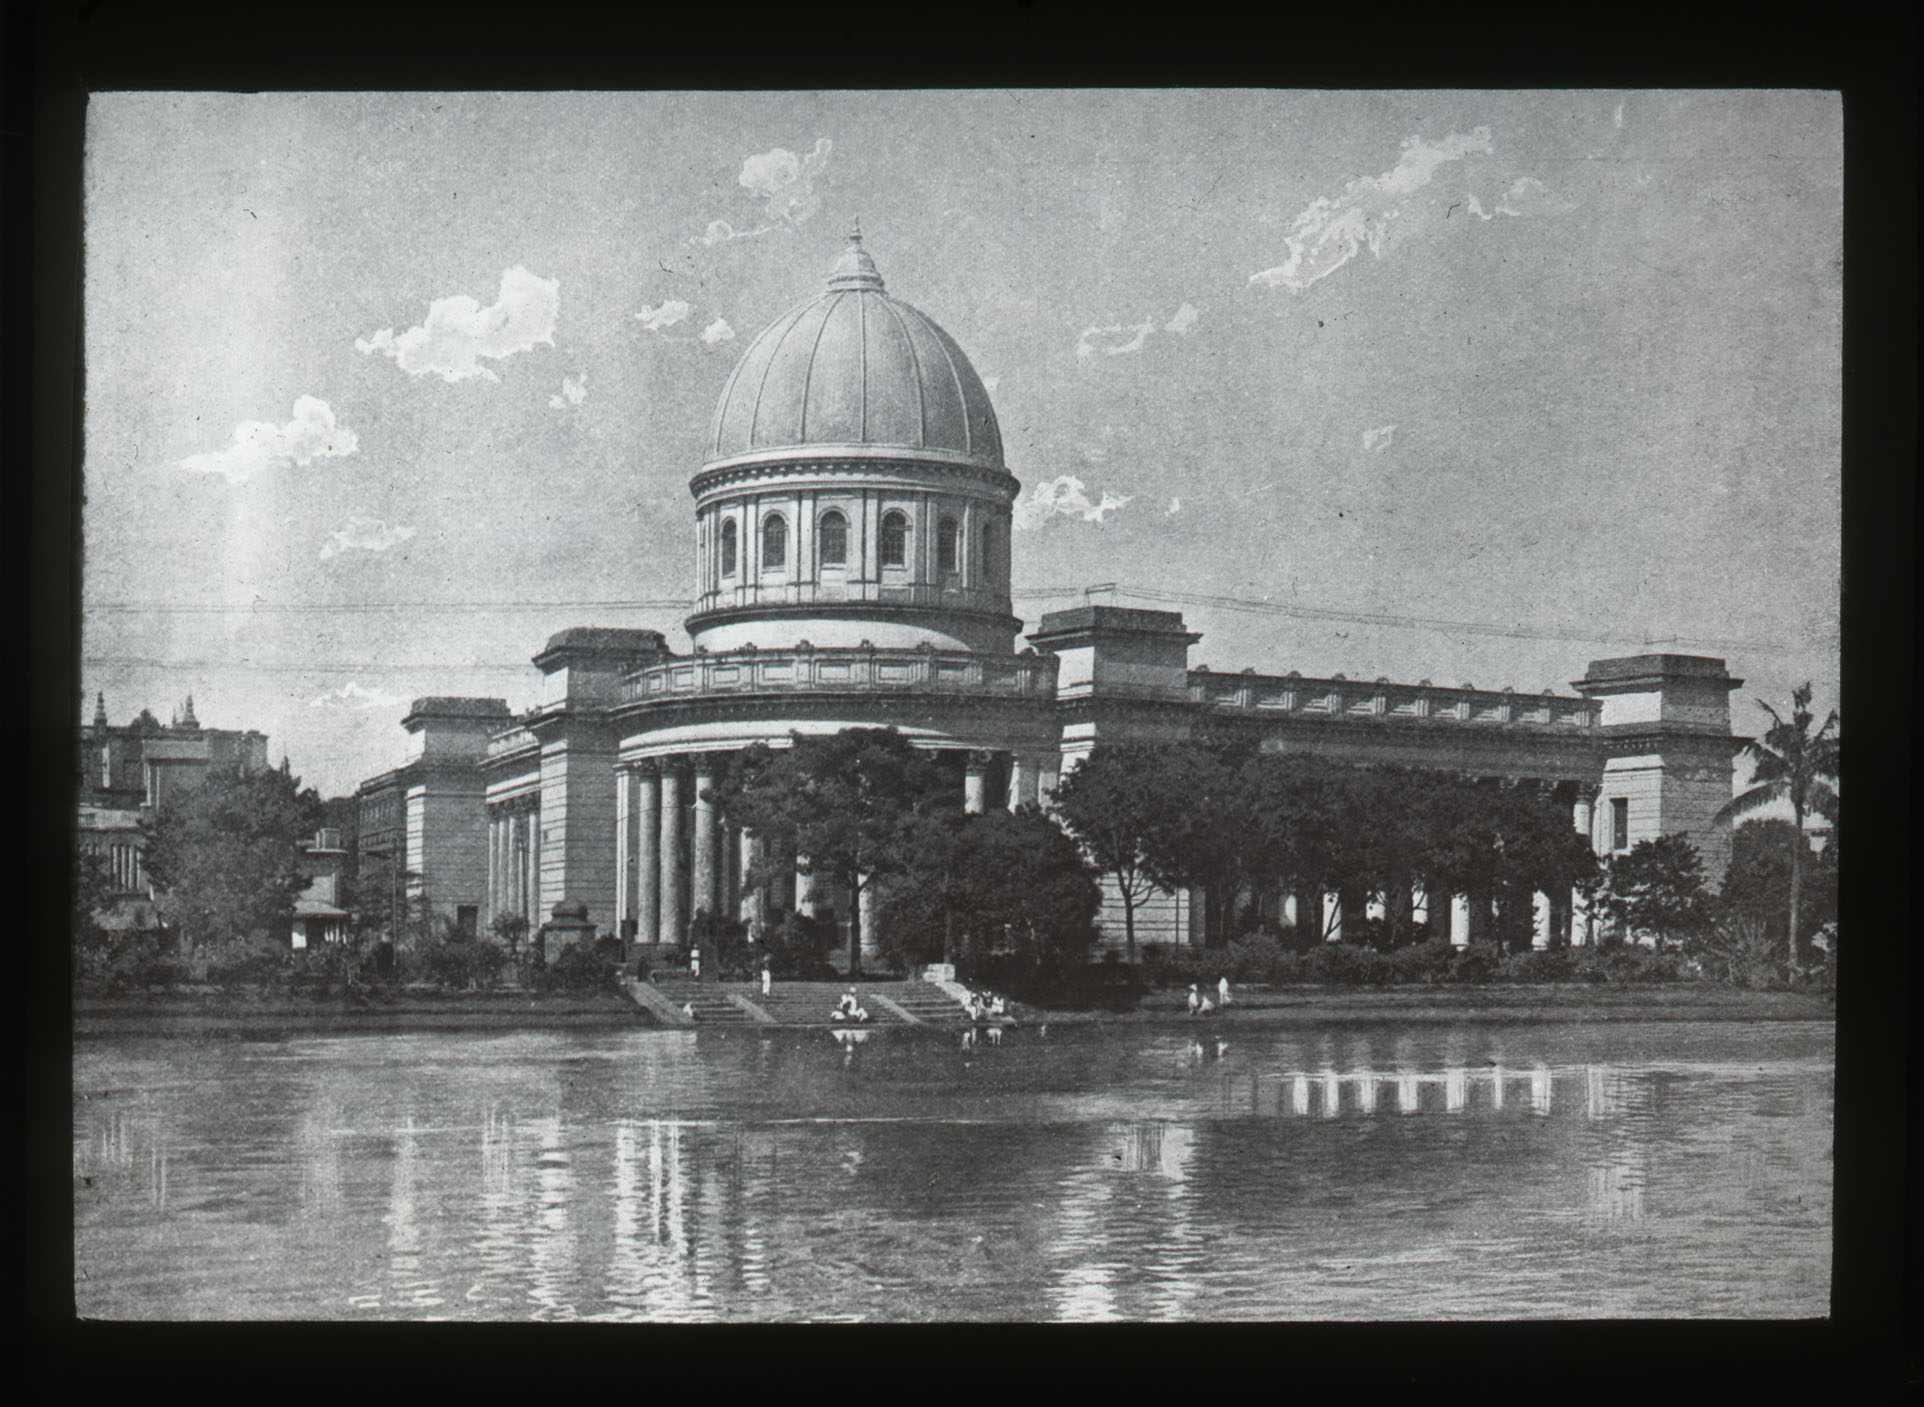 Black and white lantern slide of the domed General Post Office in Calcutta.